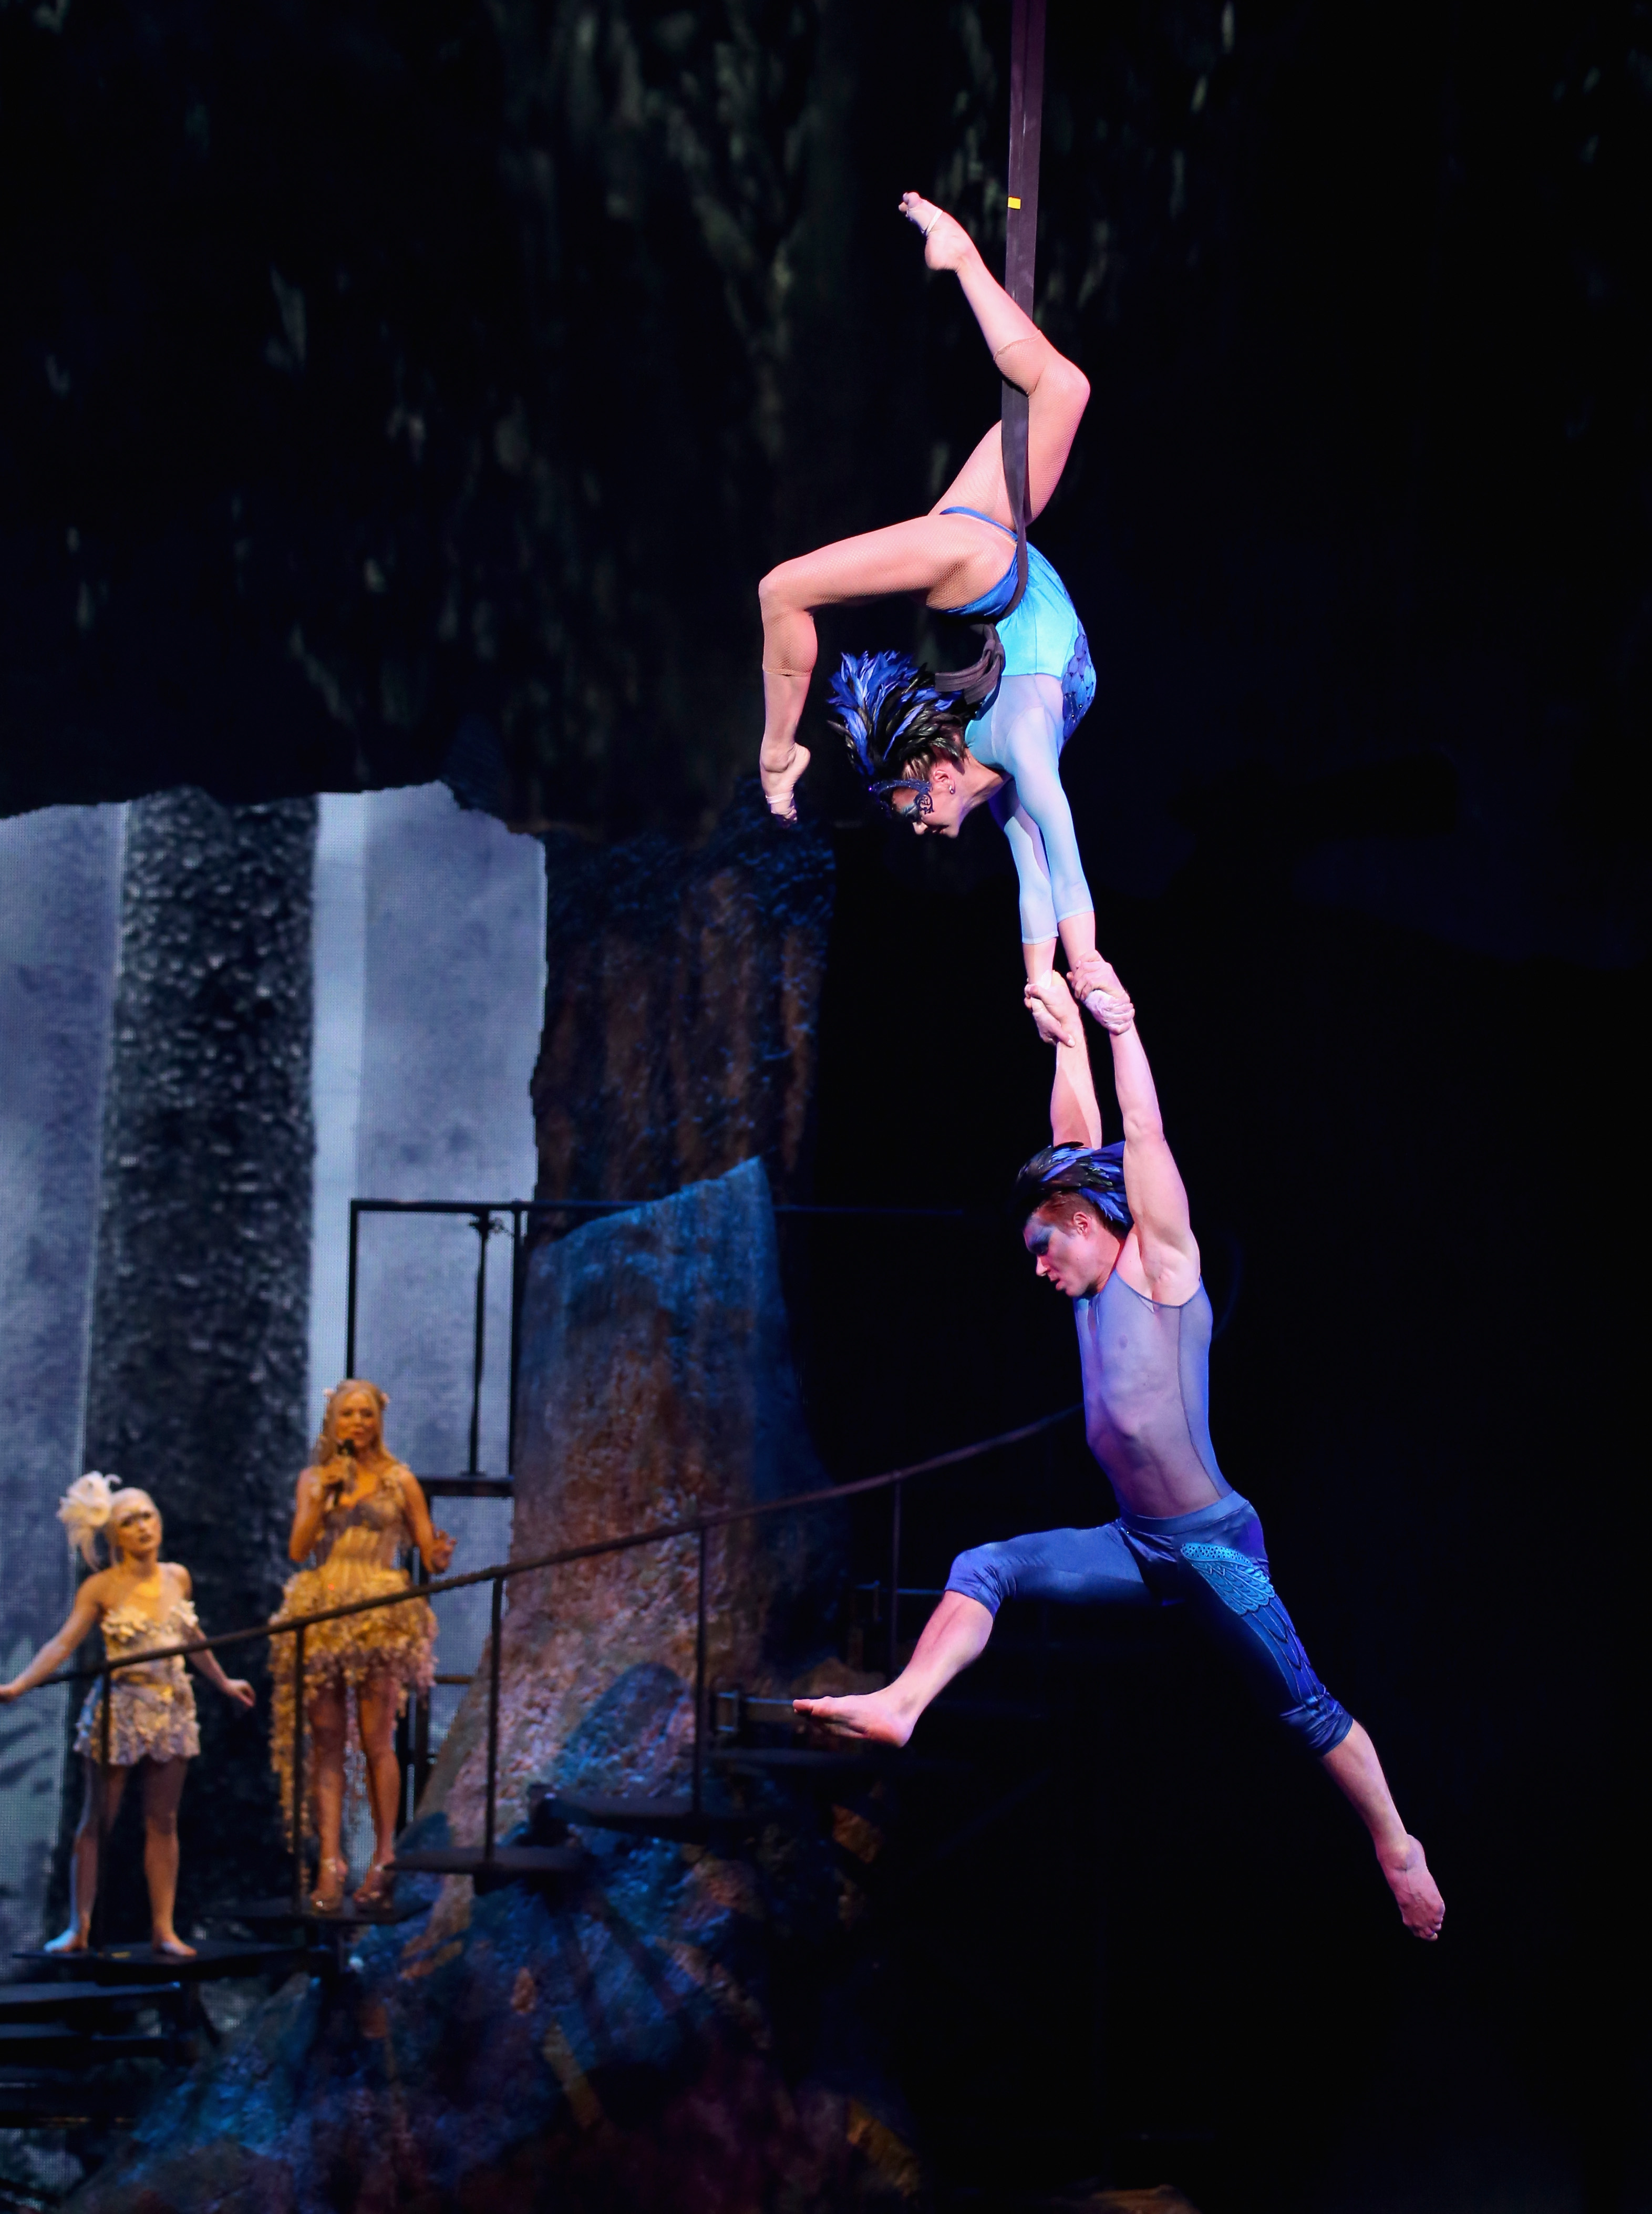 Dress Rehearsal For Sixth Annual 'One Night For One Drop' Imagined By Cirque du Soleil